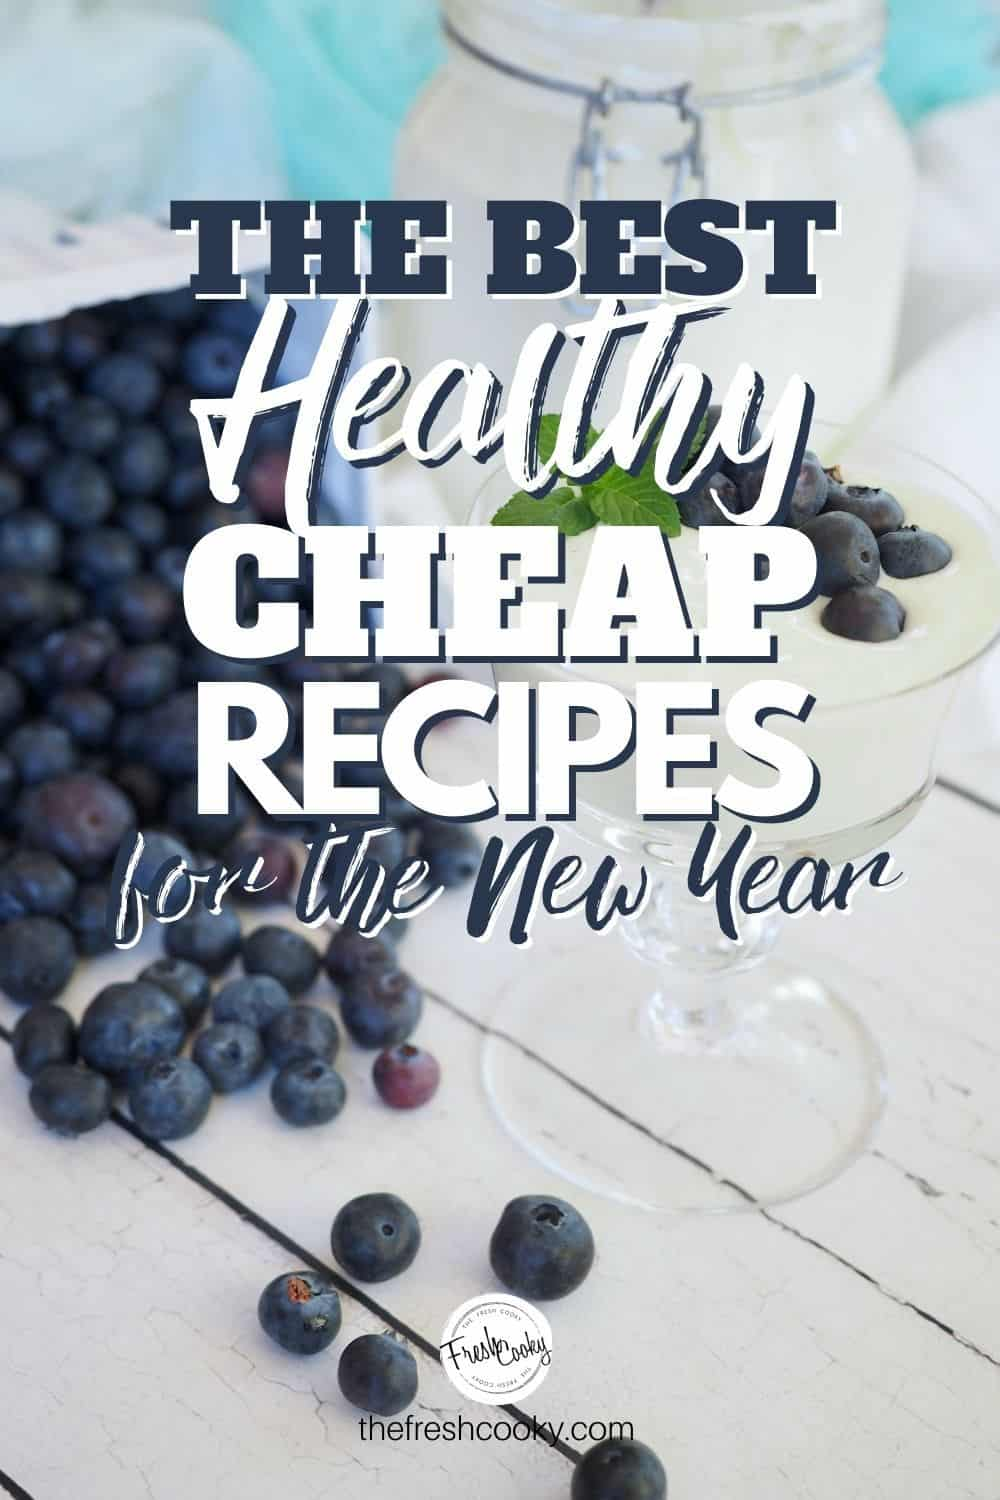 More than 20 Healthy, Budget friendly (CHEAP) recipes for the new year. Get 2021 off to a great start with a money diet, healthy, cheap and delicious recipes. #thefreshcooky #cheaprecipes #mealplanningrecipes #immuneboostingrecipes via @thefreshcooky